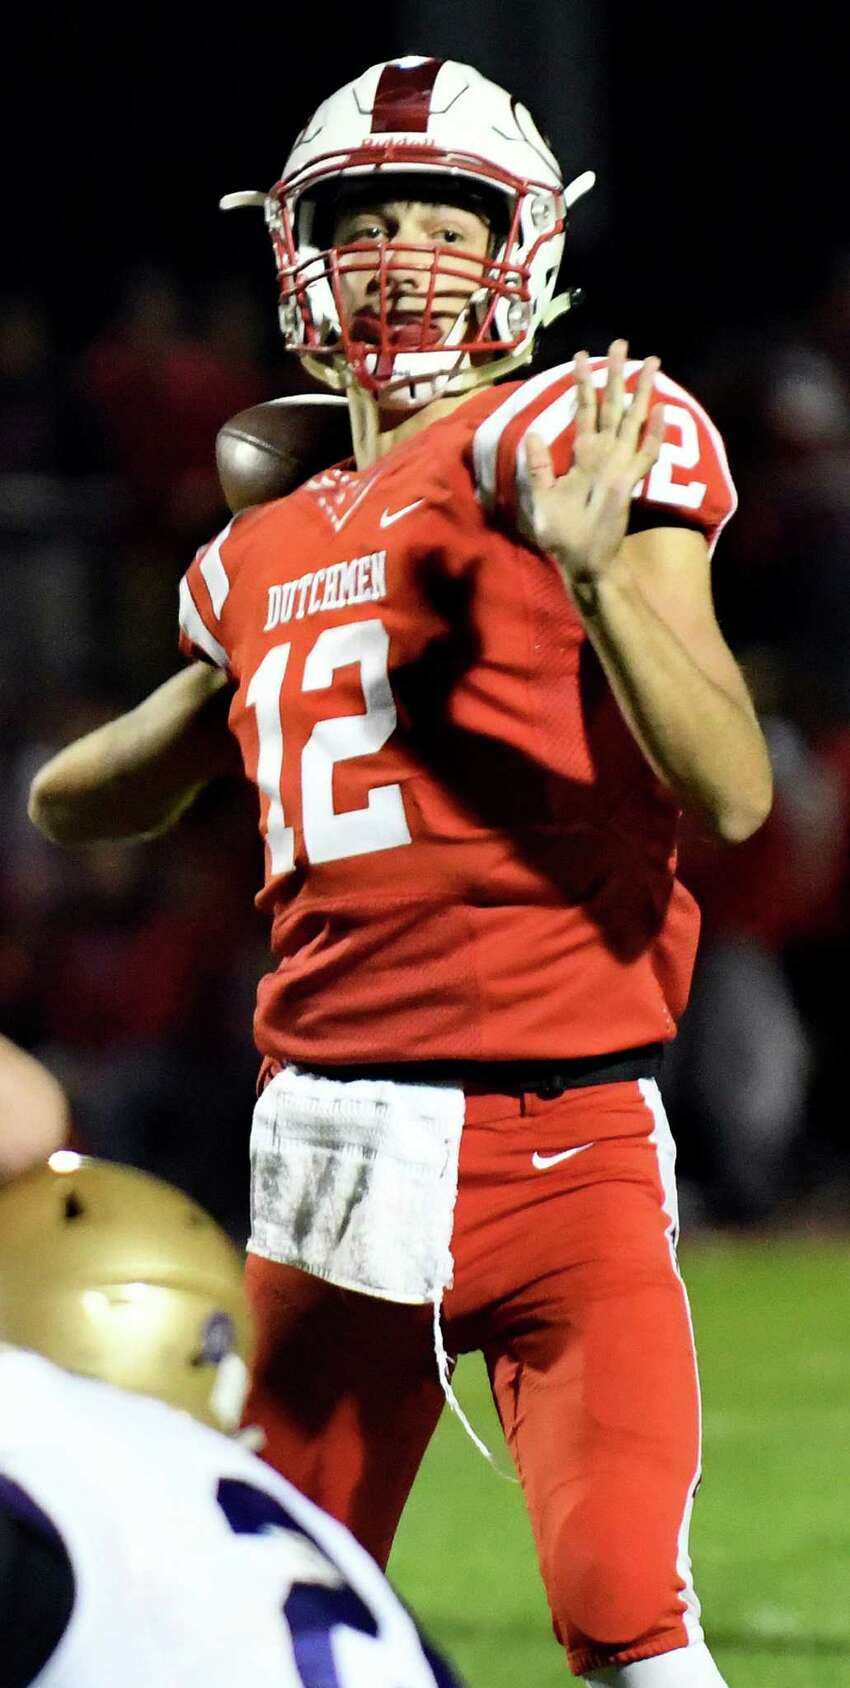 Guilderland's quarterback George Marinopoulos cocks back the ball for a pass during their football game against CBA on Friday, Oct. 7, 2016, at Guilderland High in Guilderland, N.Y. (Cindy Schultz / Times Union)